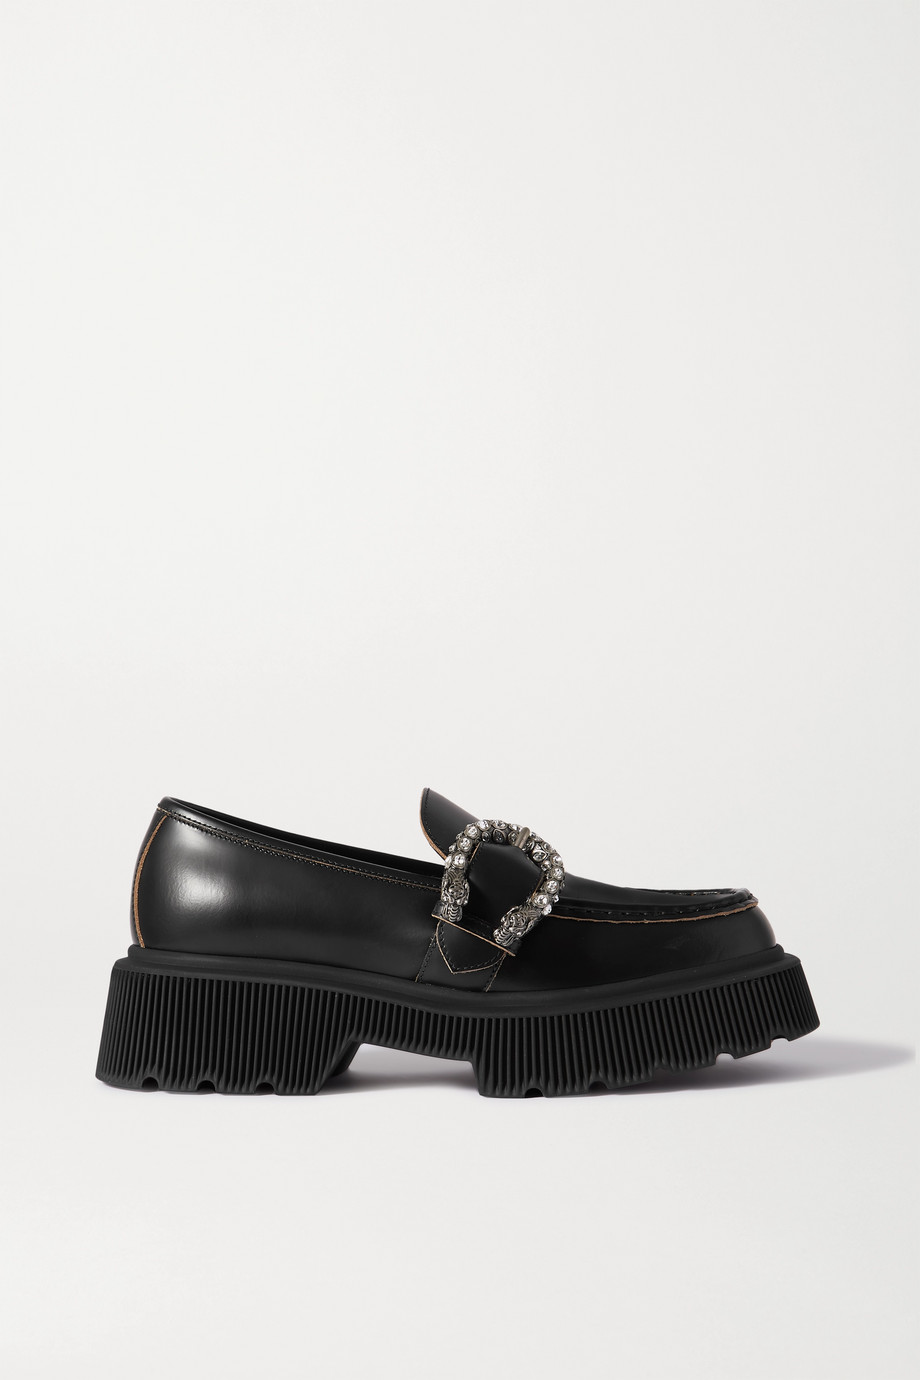 Gucci Hunder crystal-embellished leather platform loafers